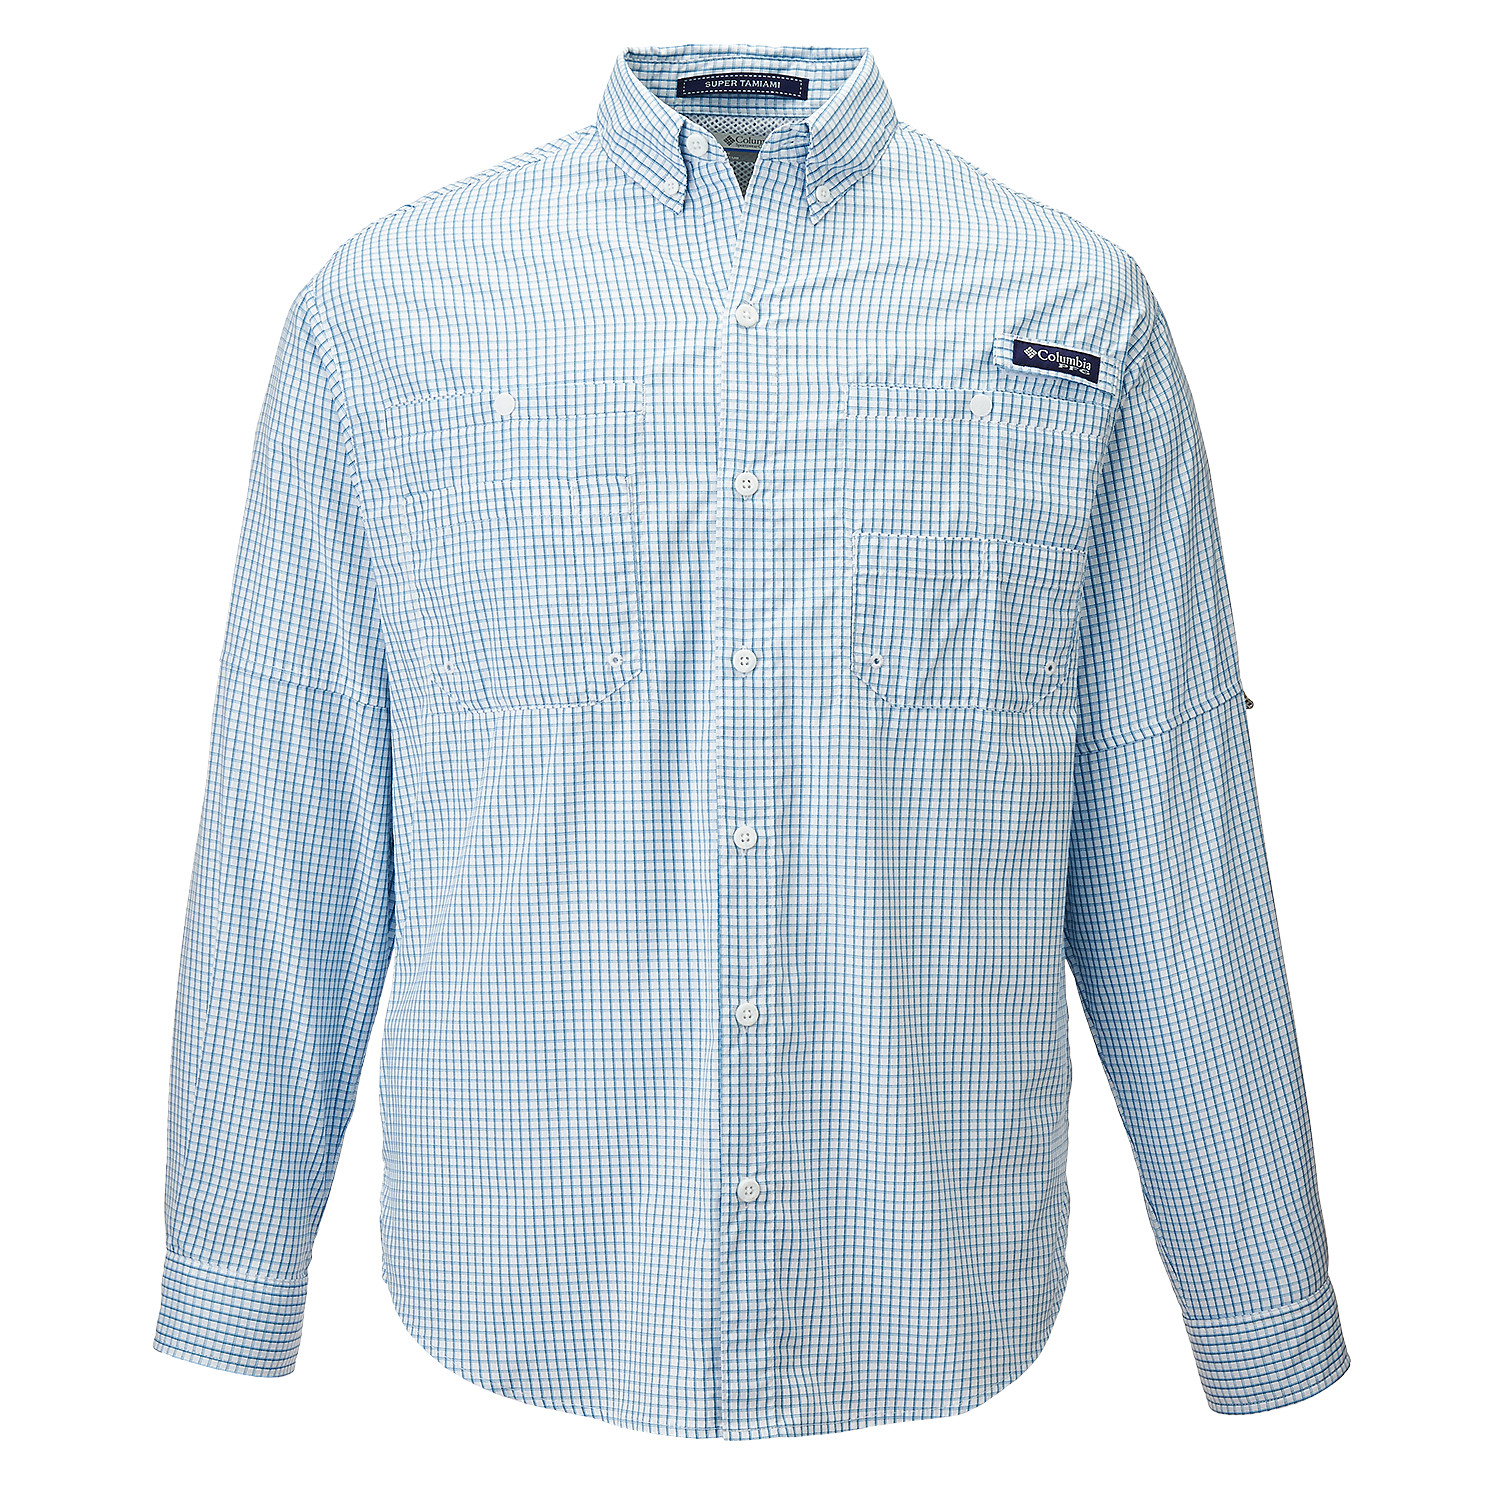 Columbia 143894 - Men's PFG Super Tamiami™ Gingham Long Sleeve Shirt